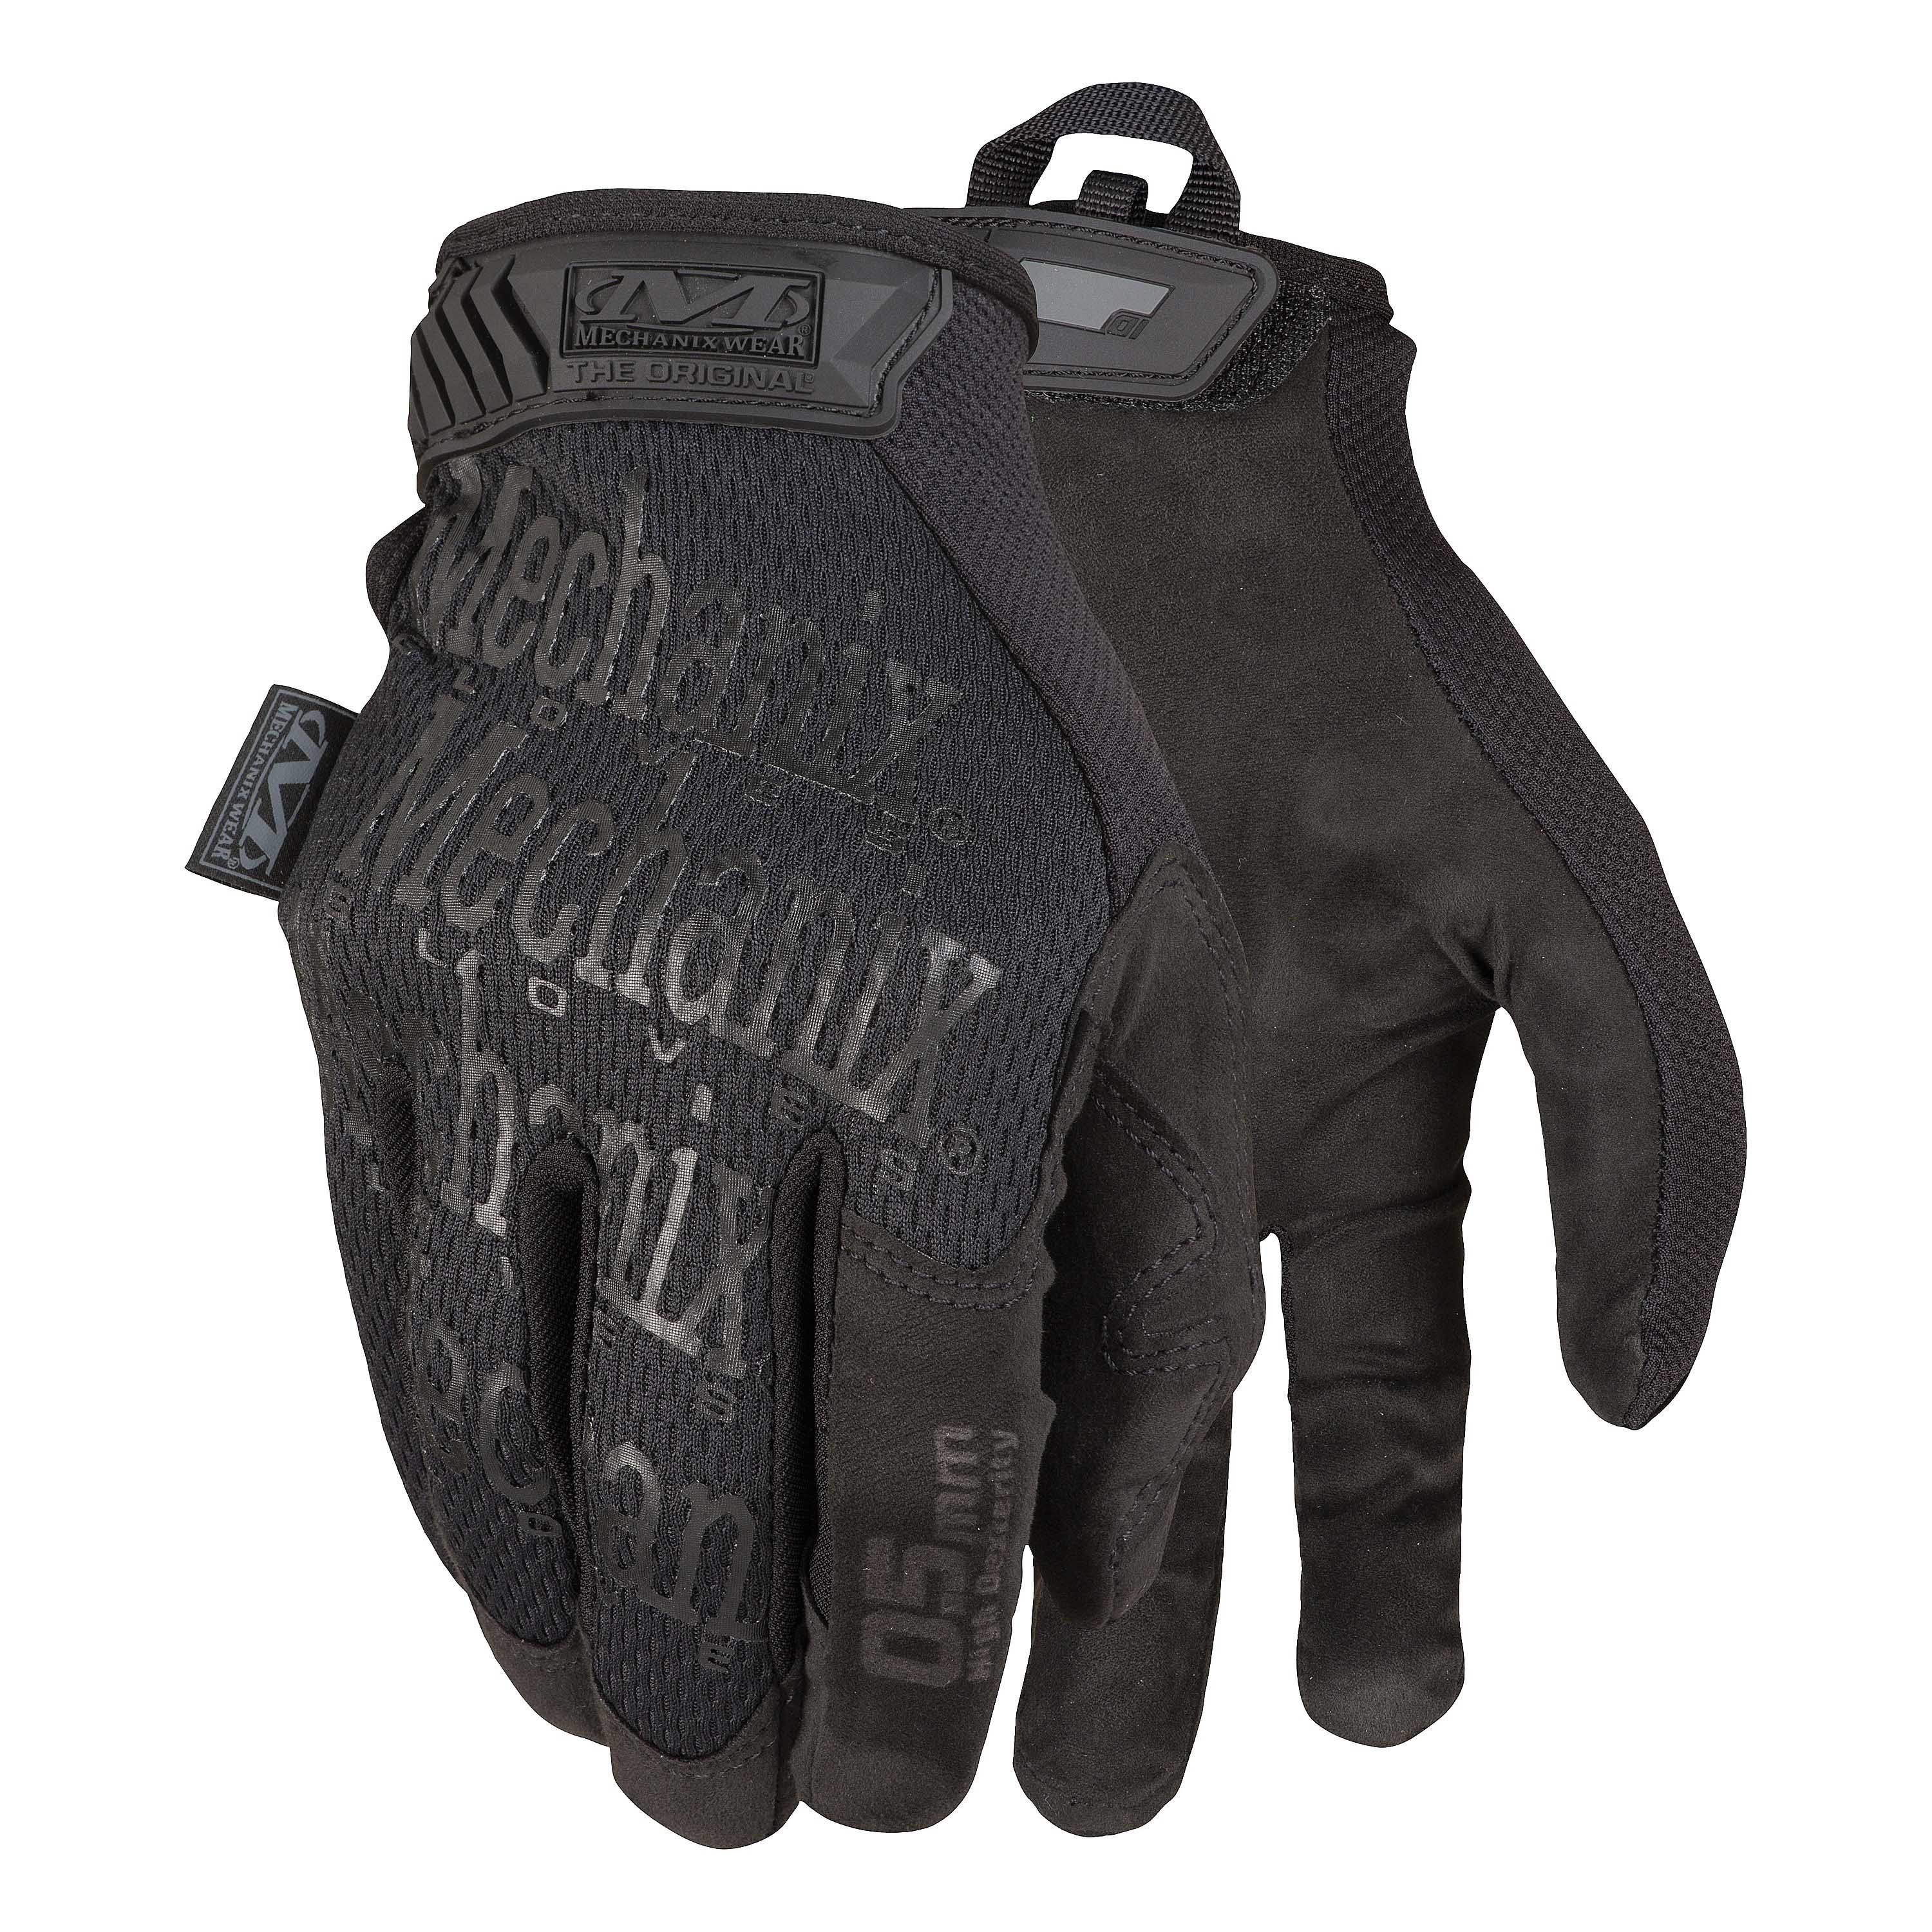 Gloves Mechanix The Original 0.5 mm Covert